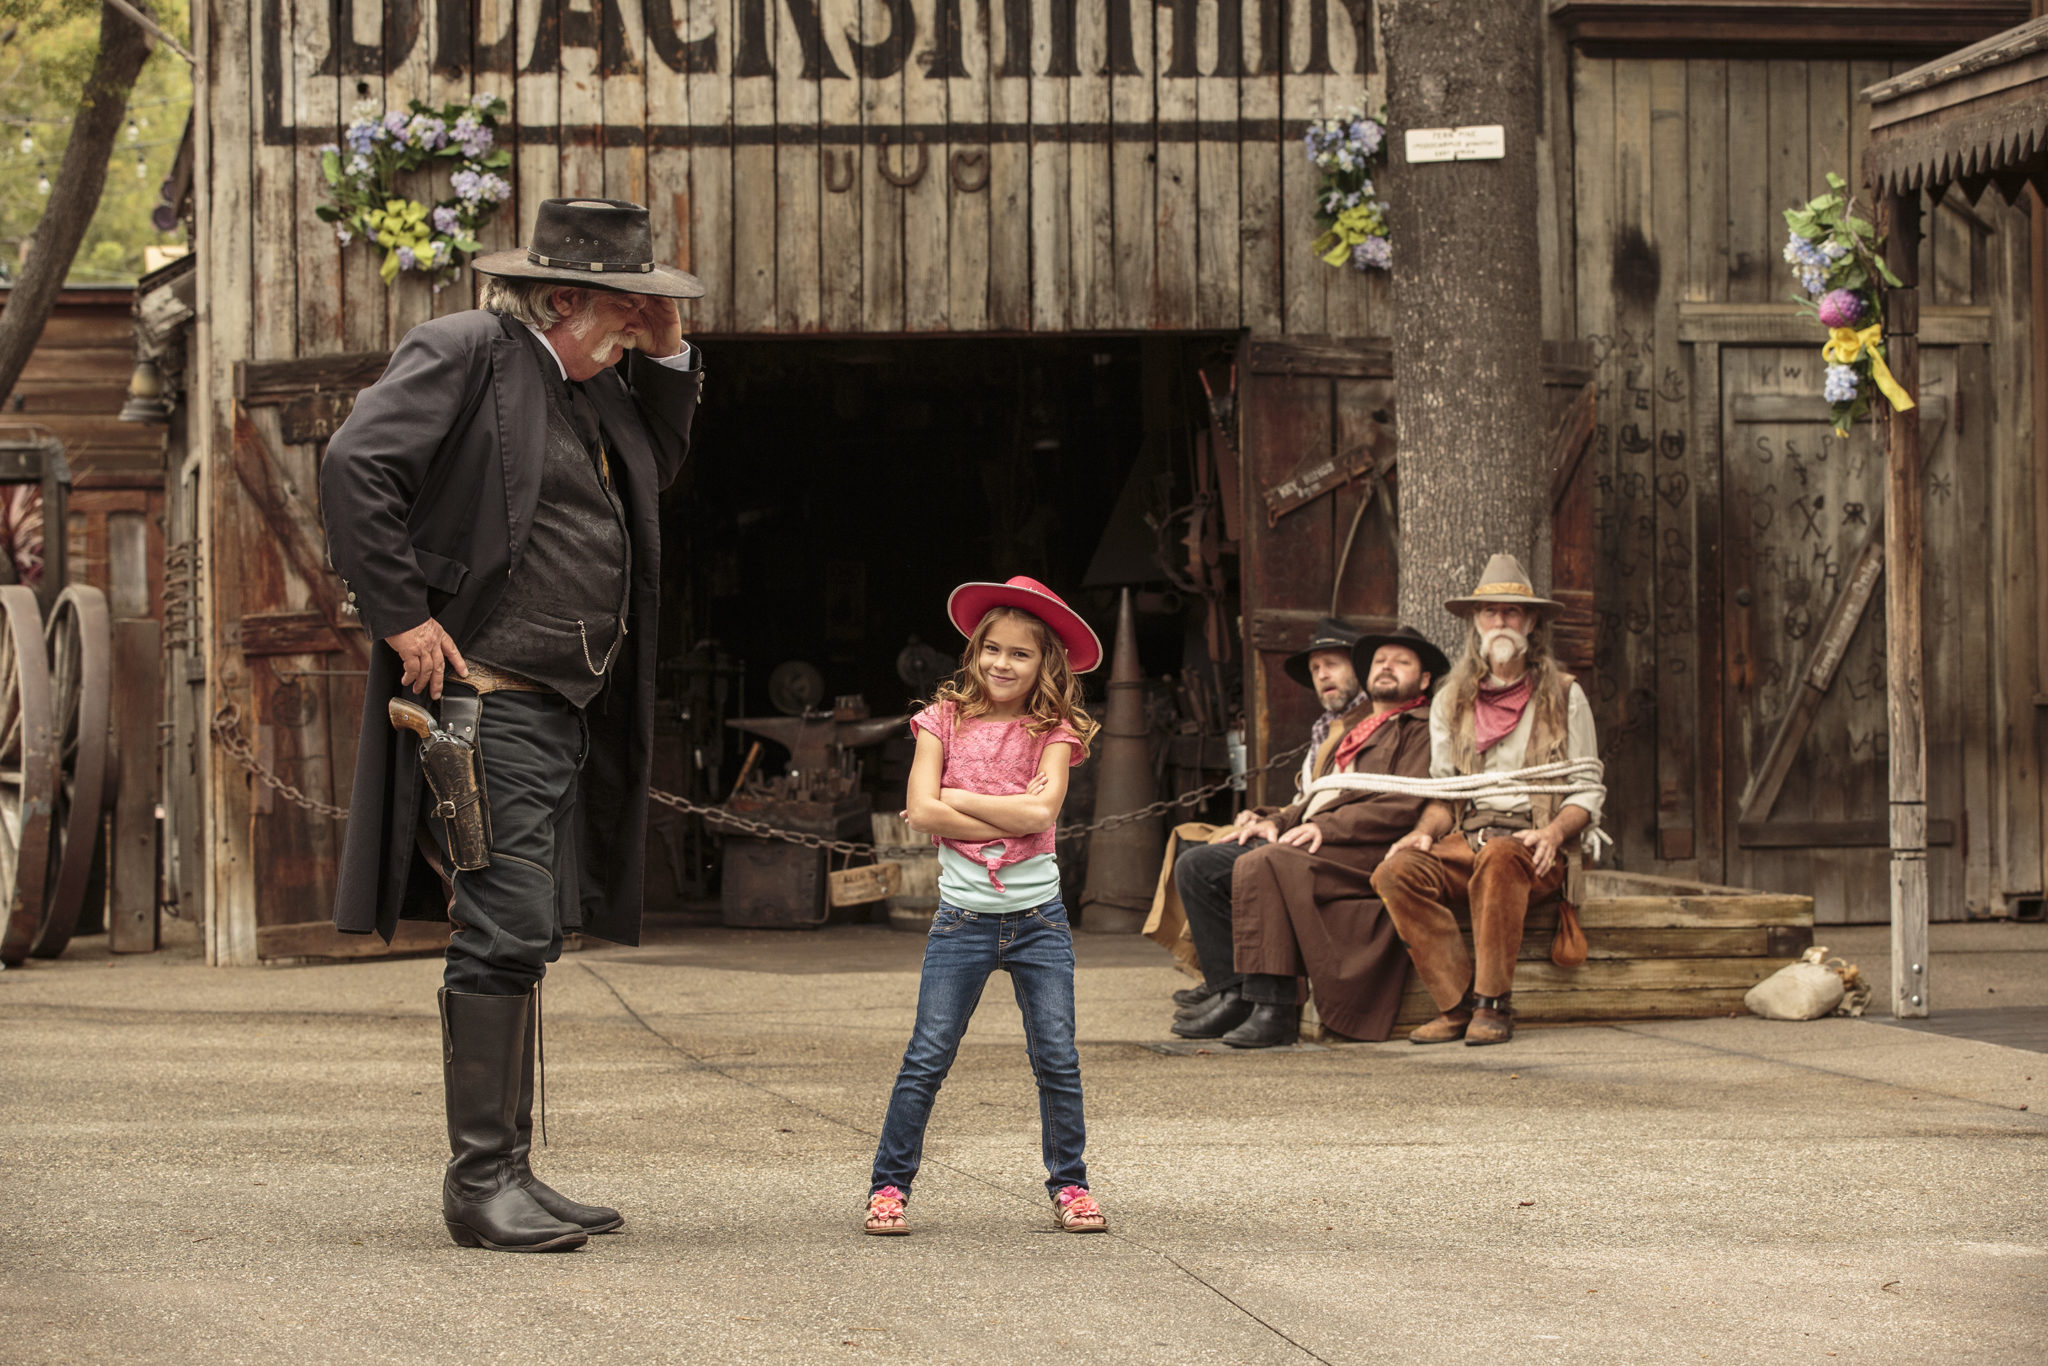 2017 Knott's Berry Farm Ghost Town Sheriff and Girl with bandits tied up